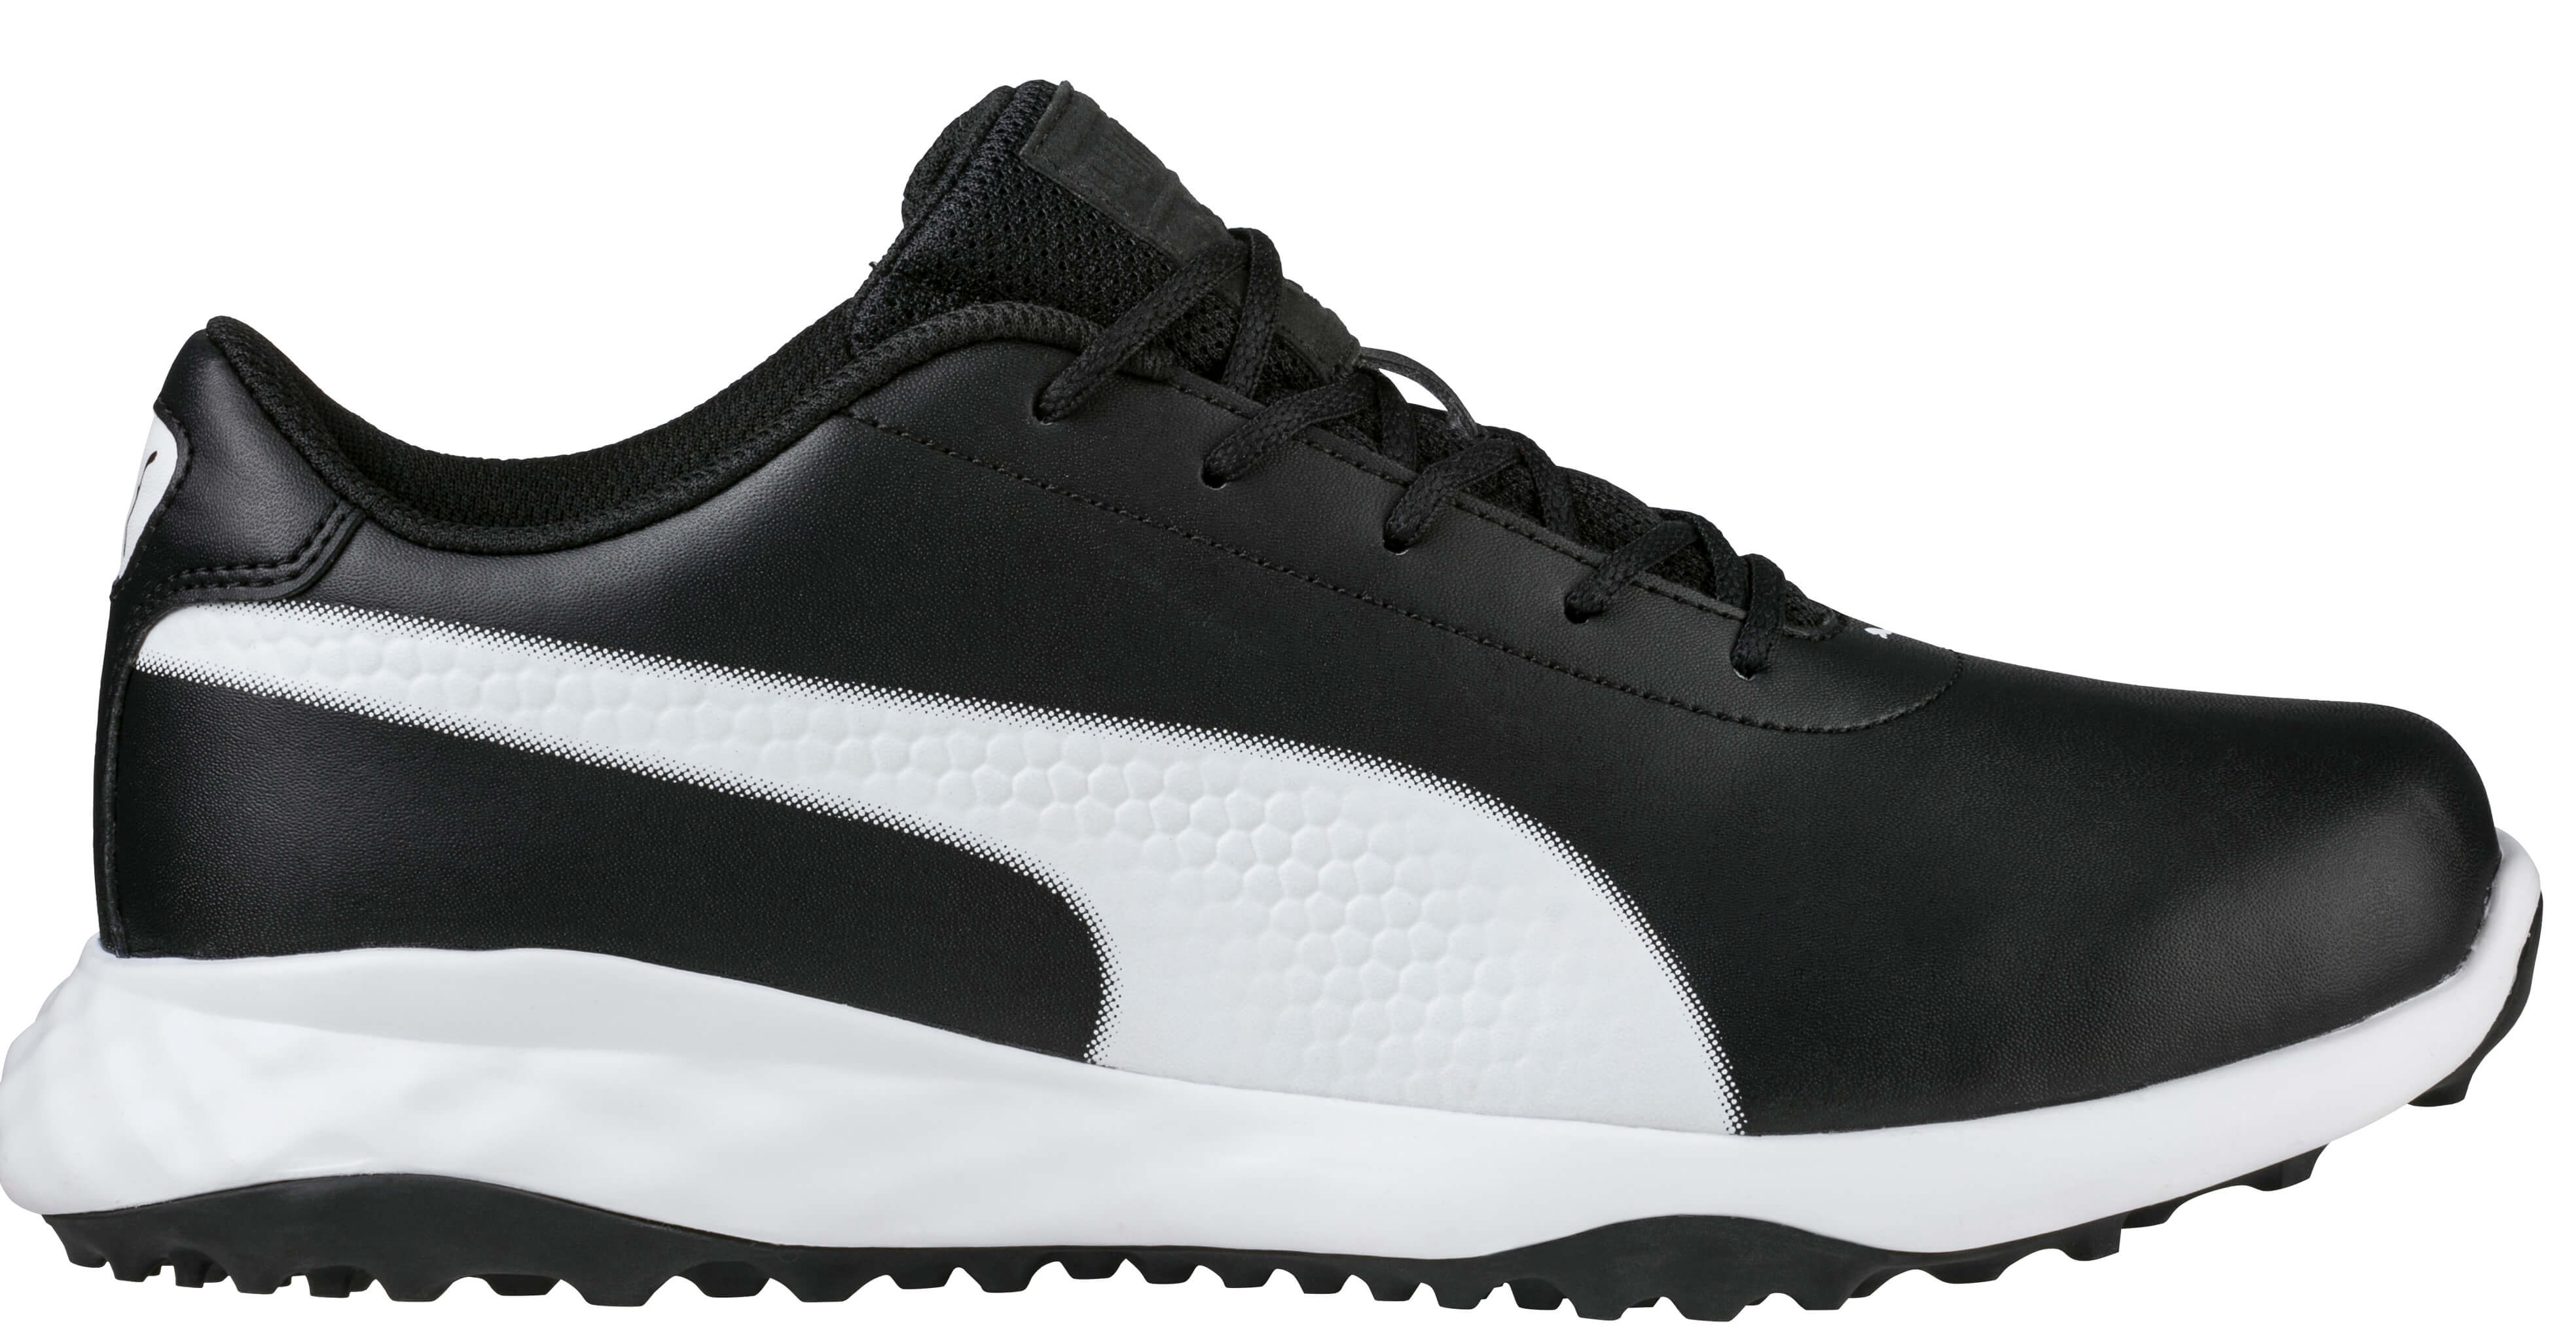 Puma chaussures Grip Fusion Classic Golf chaussures Puma 190562 homme New 2018 - Choose Color & Taille 372f52